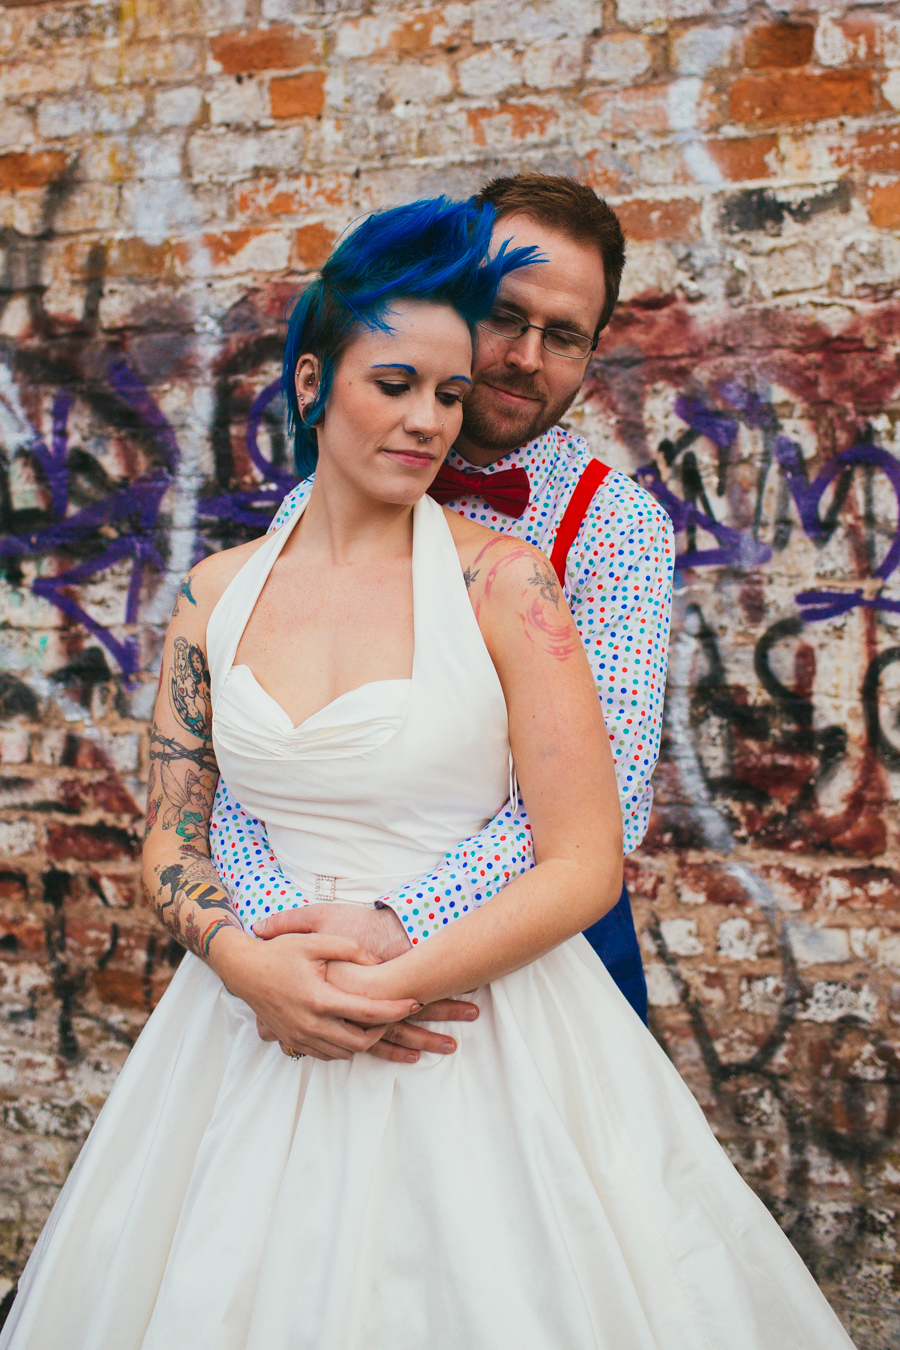 Alternative Wedding Photographer Northern Ireland, bride with blue mohawk, groom with beard and glasses, bride with tattoos and septum piercing, Belfast, Northern Ireland